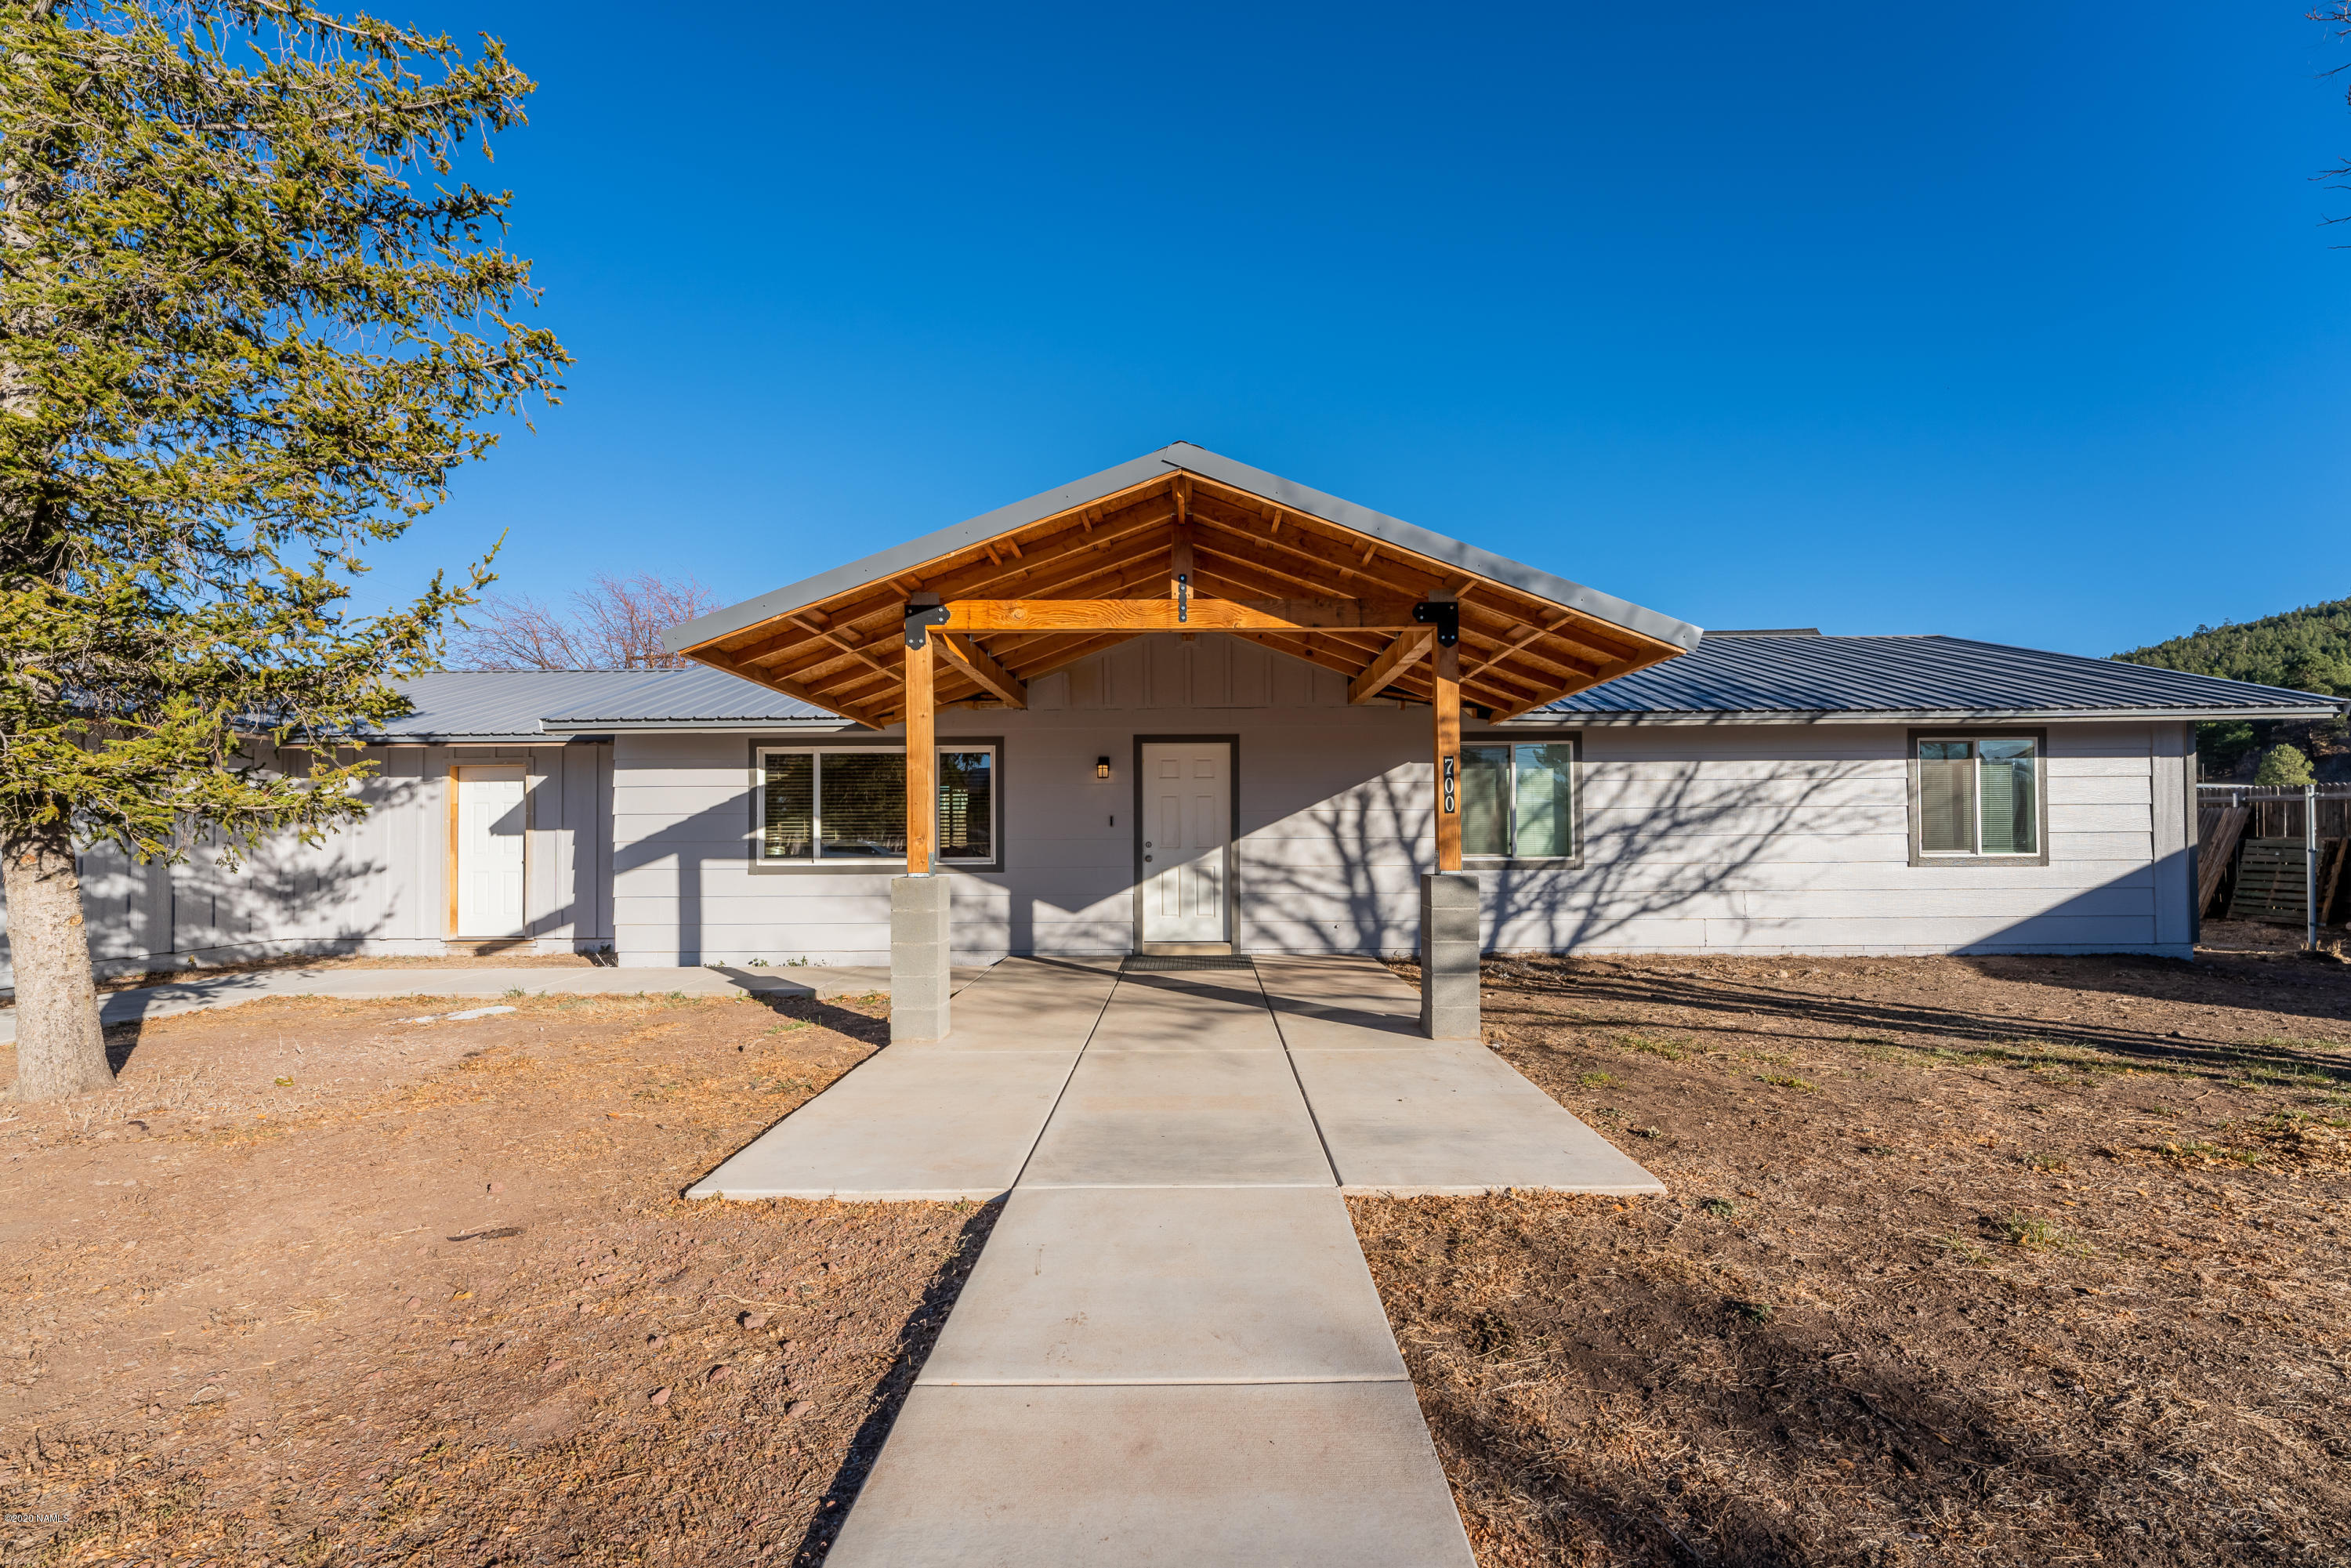 Photo of 700 Quarter Horse Road, Williams, AZ 86046